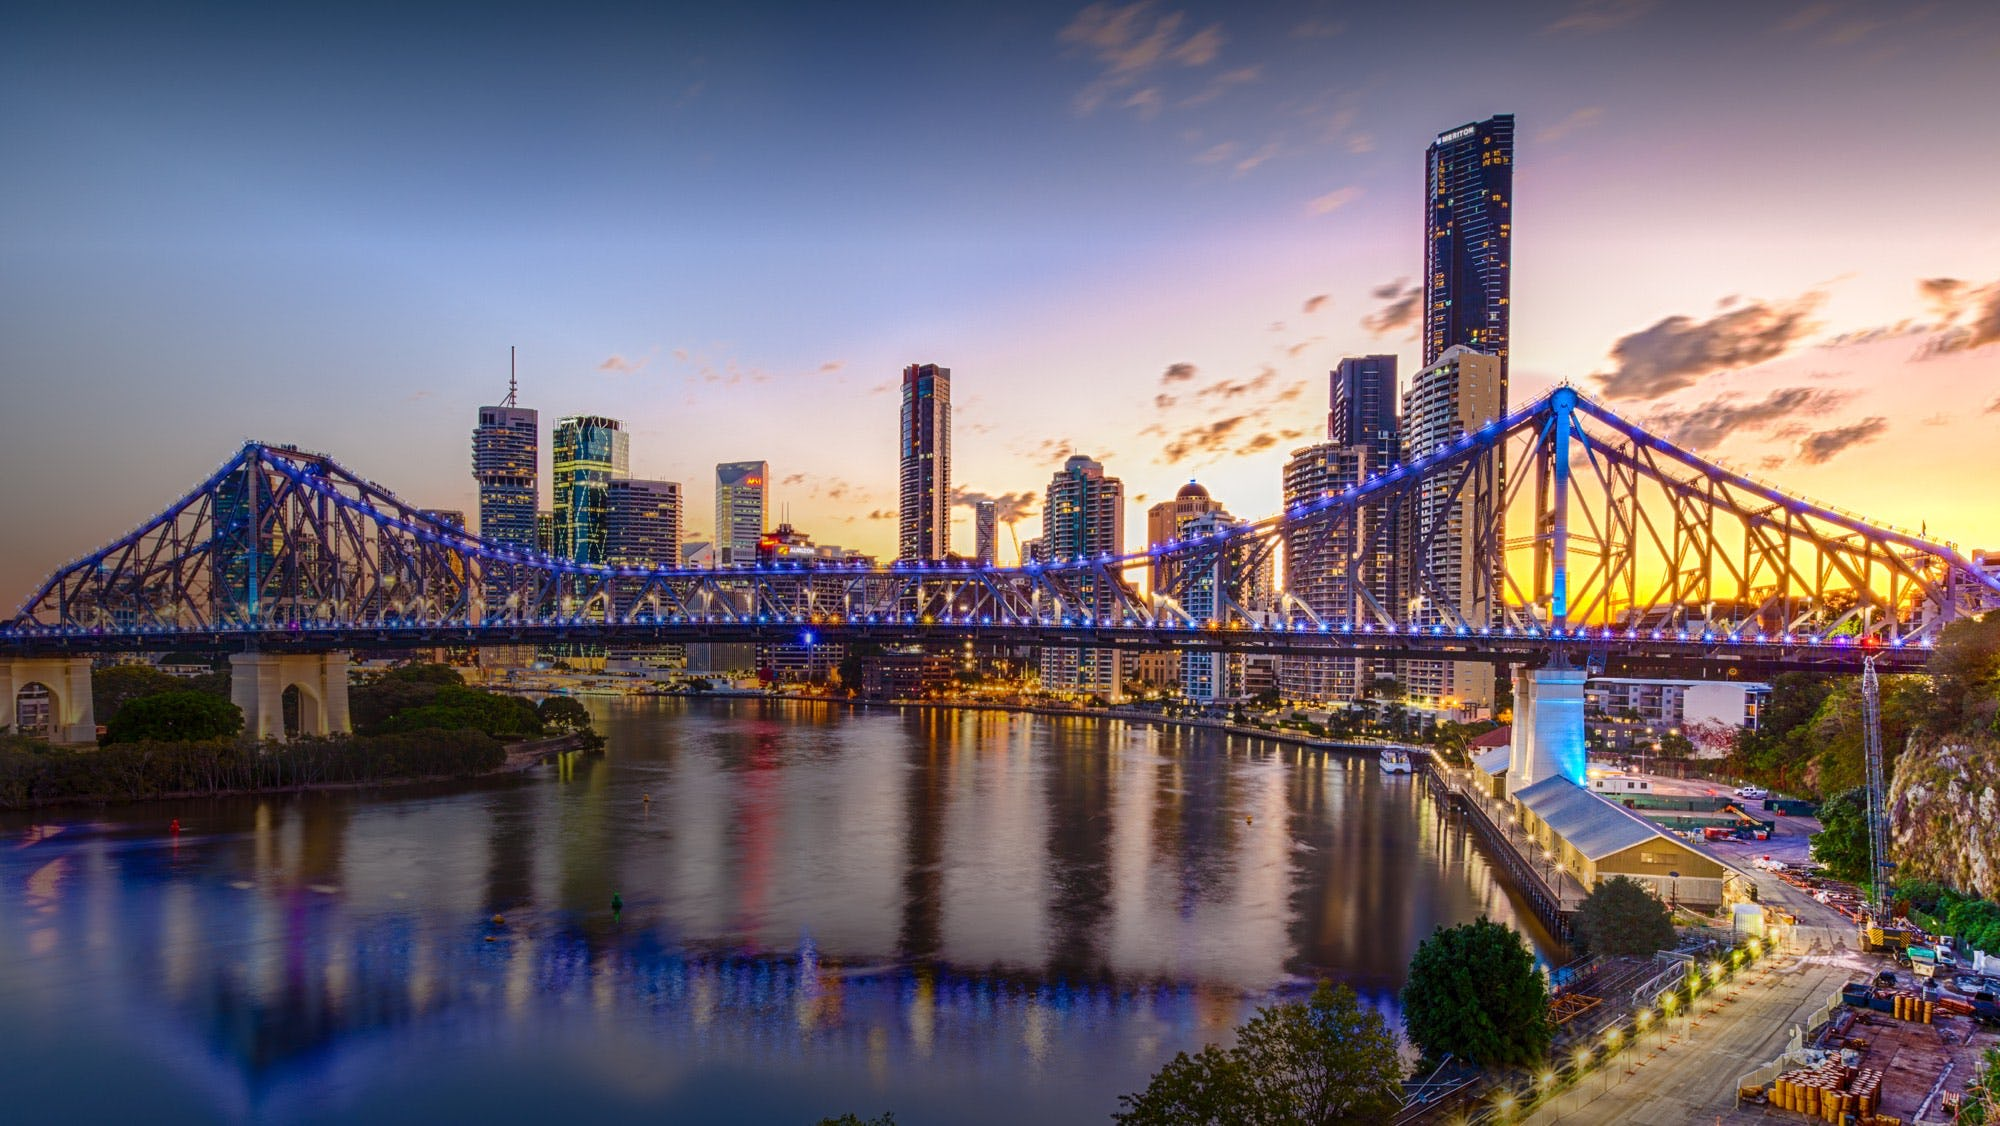 brisbane bridge